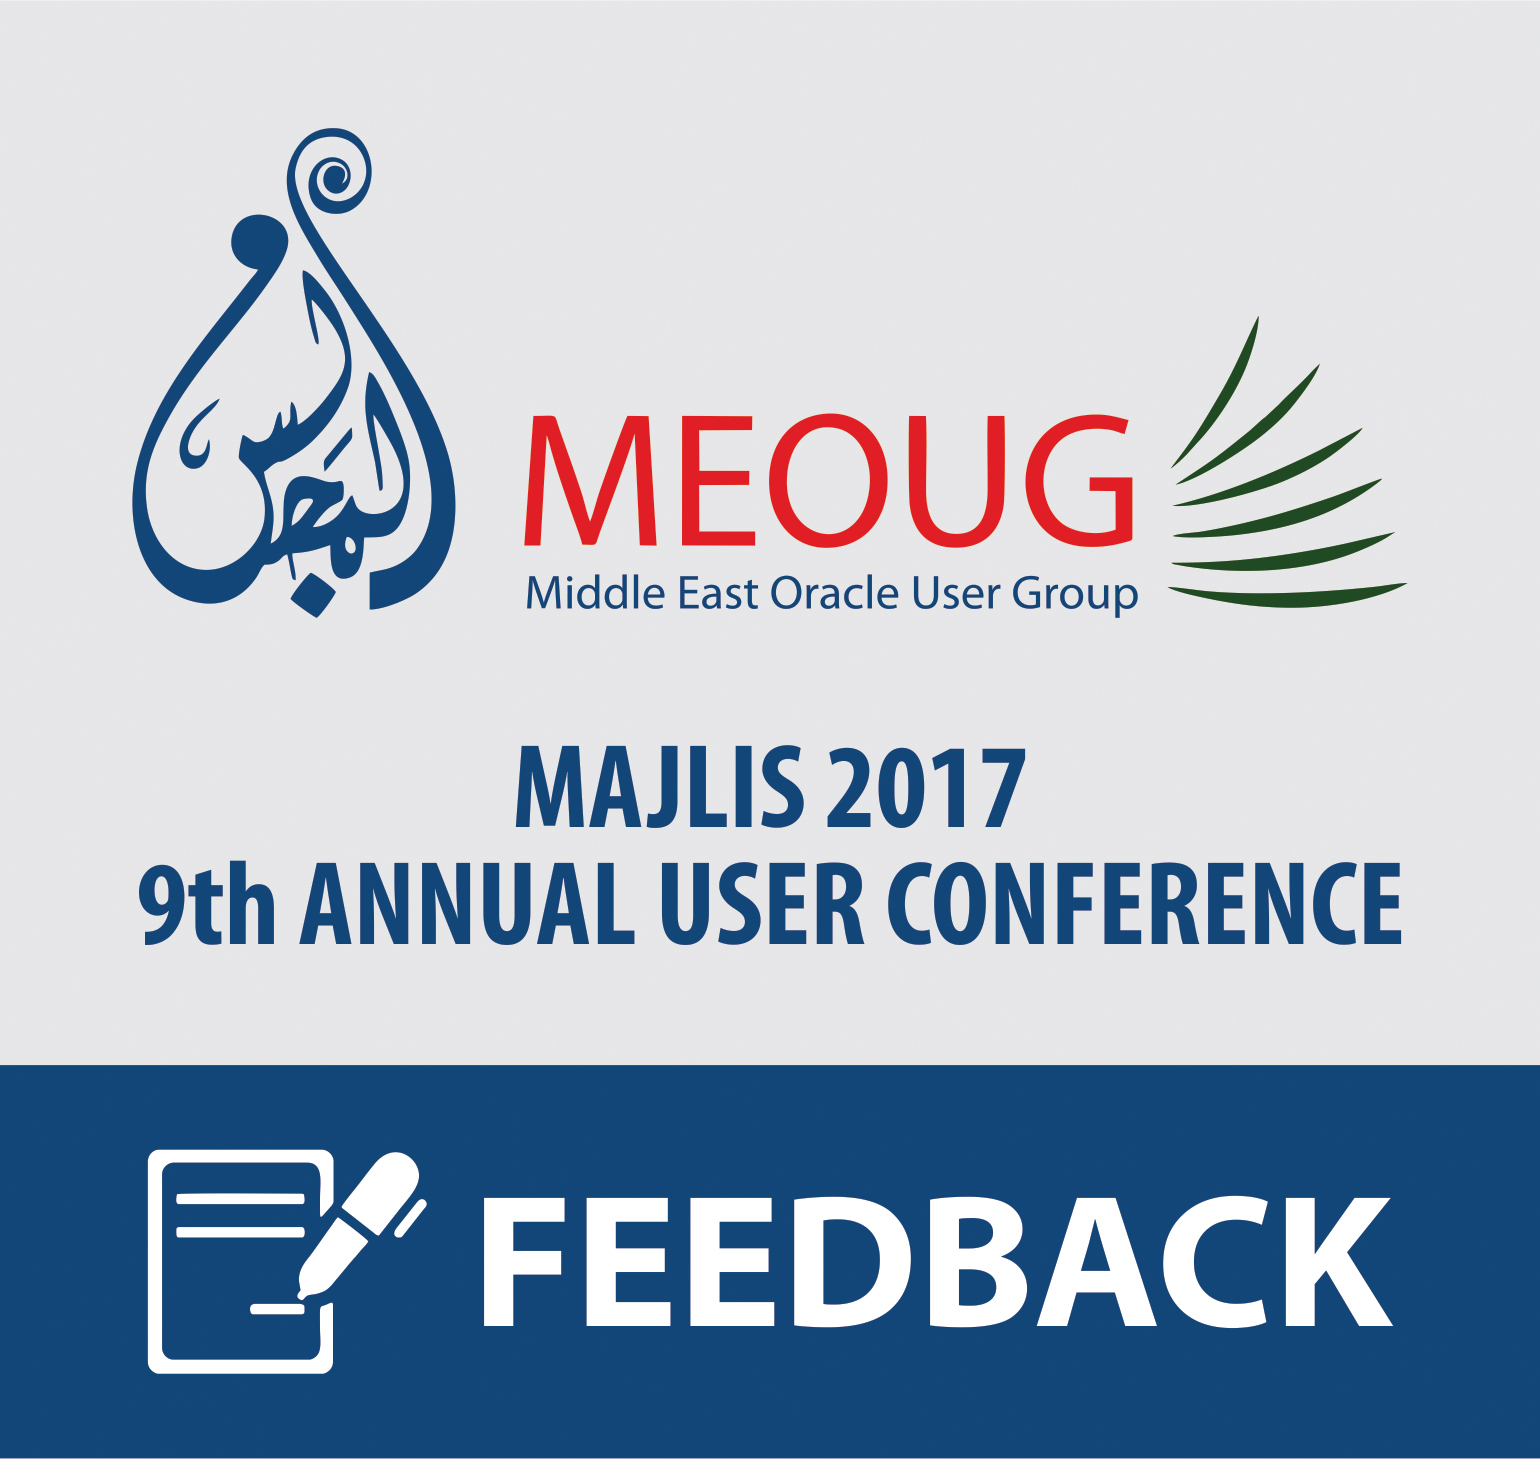 Feed Back on MEOUG MAJLIS 2017 ANNUAL USER CONFERENCE